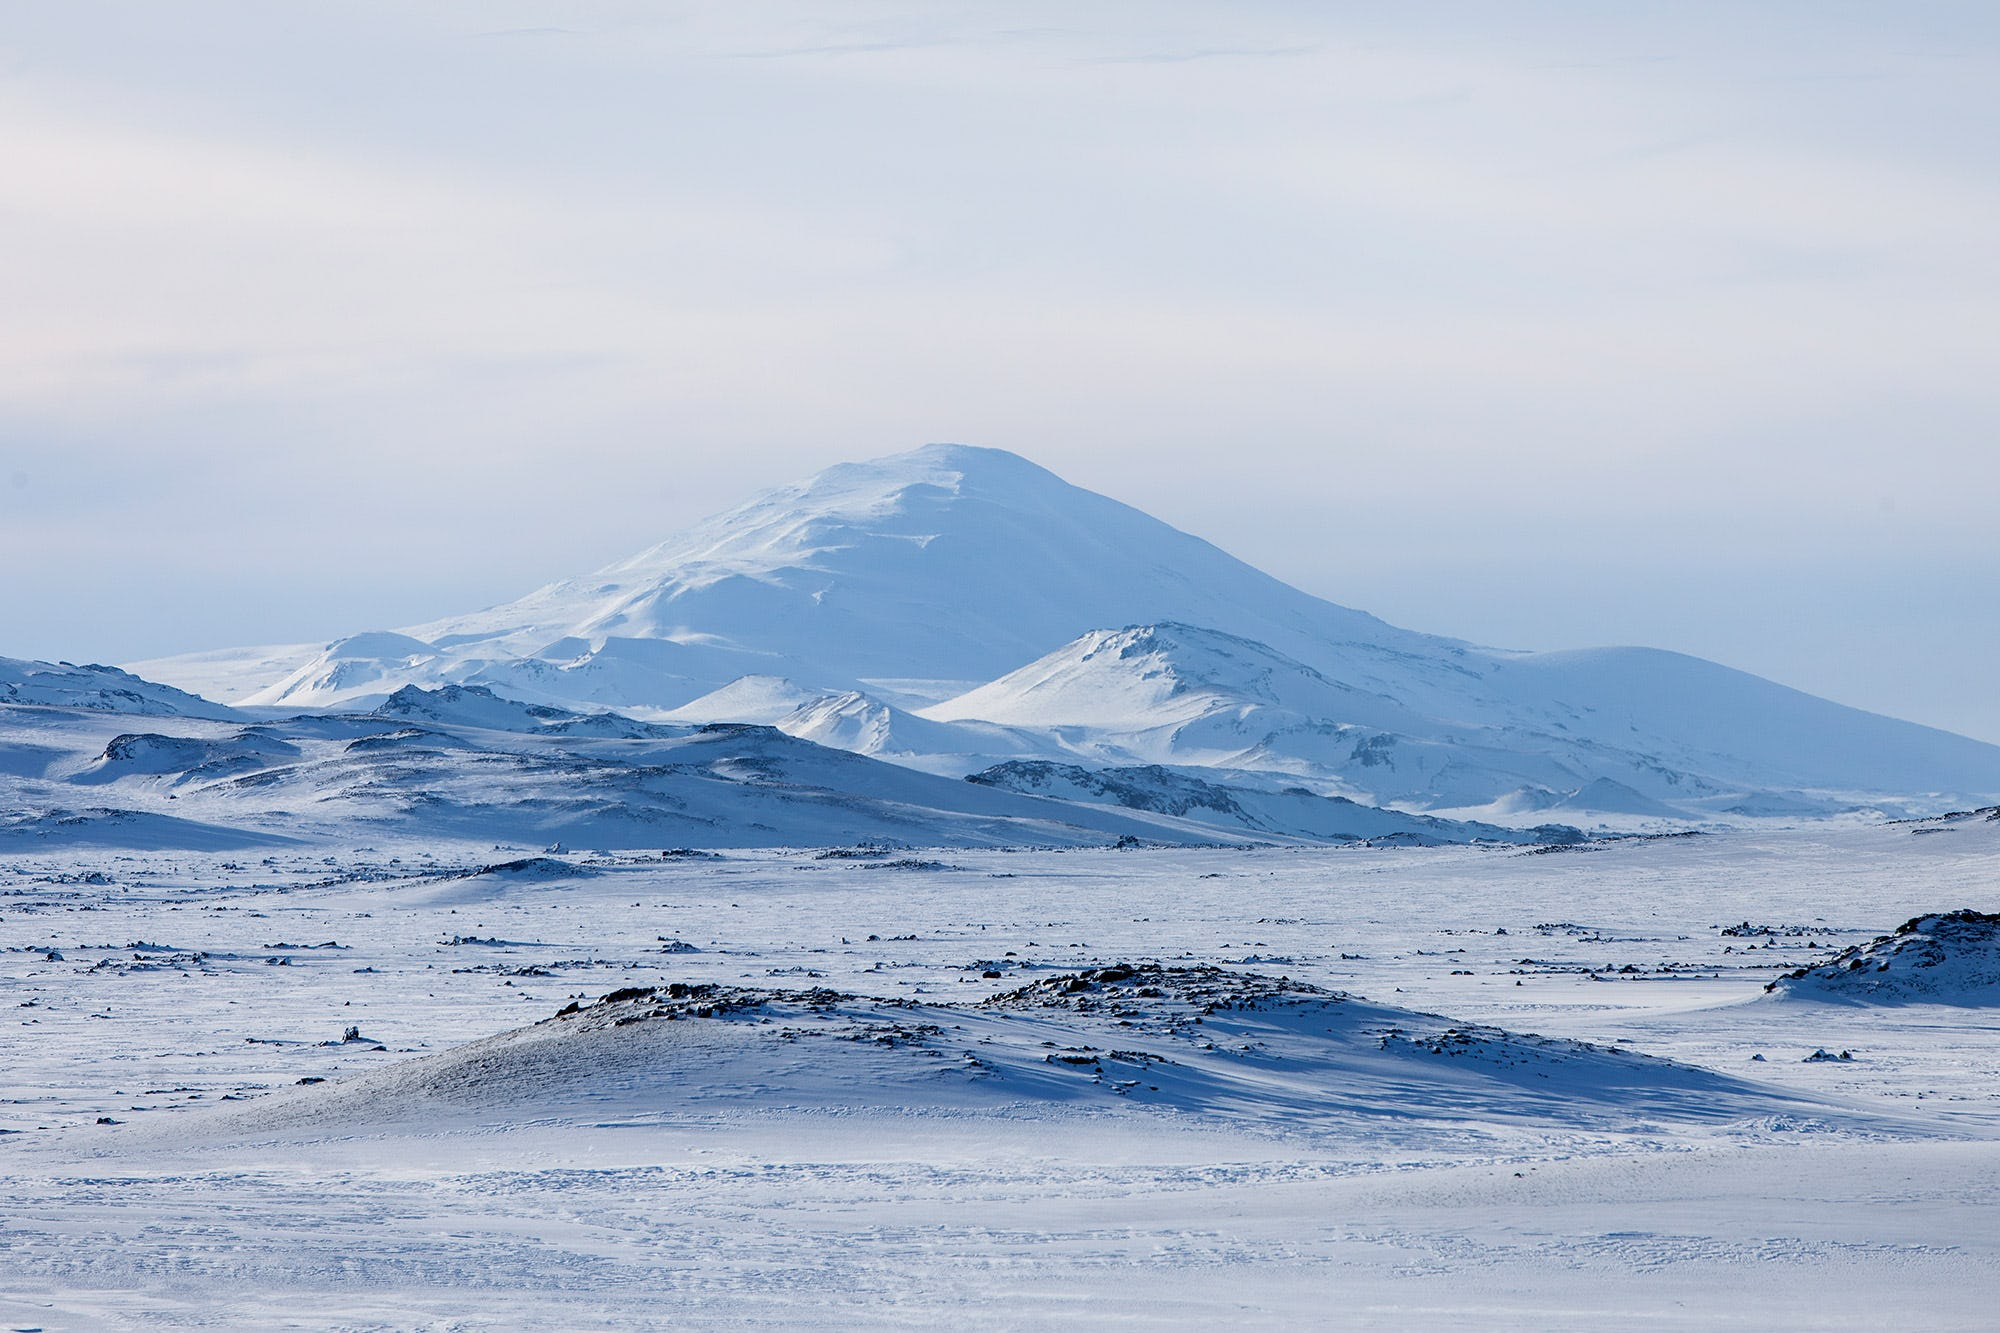 See the best of Iceland in the winter with this exciting 3-day super jeep tour.